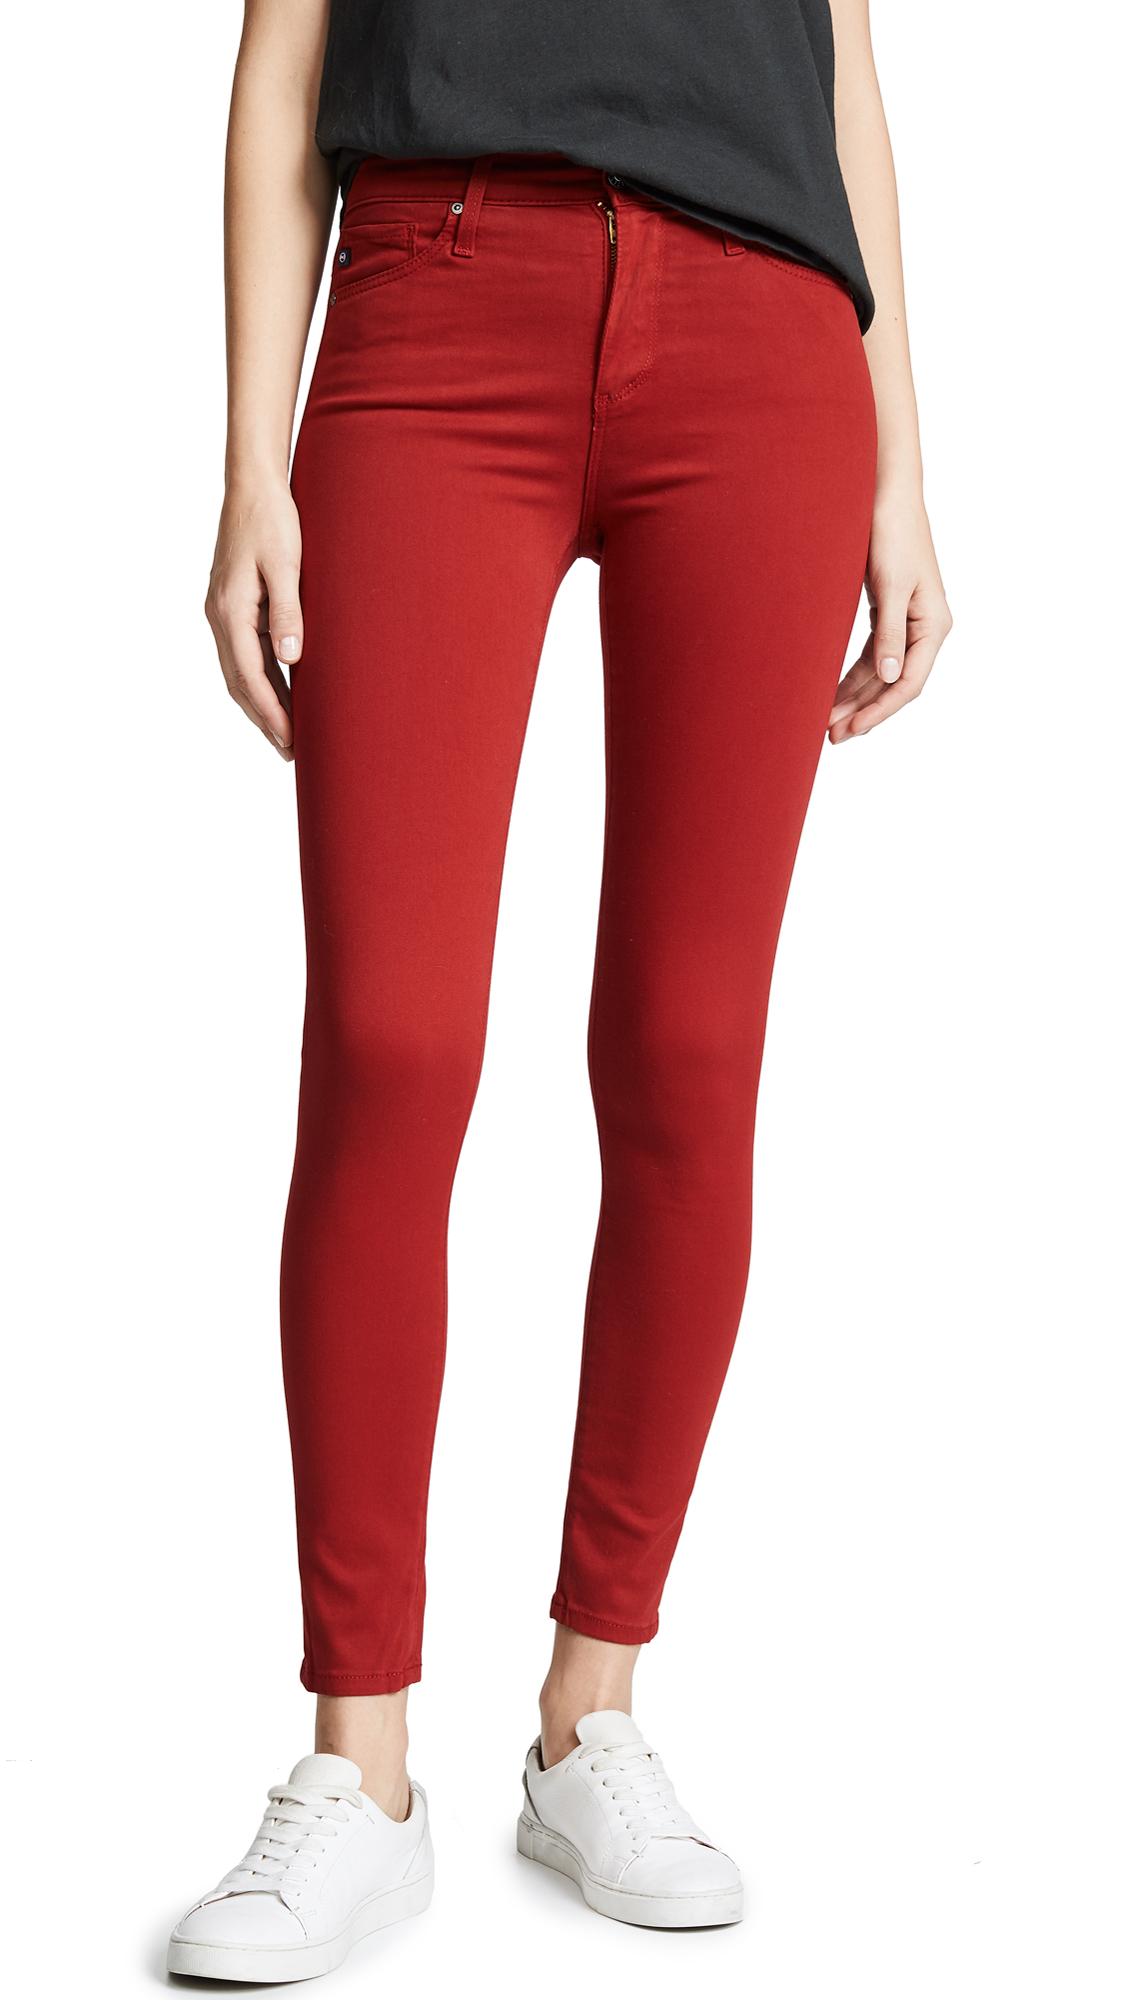 AG The Farrah Skinny Ankle Jeans - Red Amaryllis